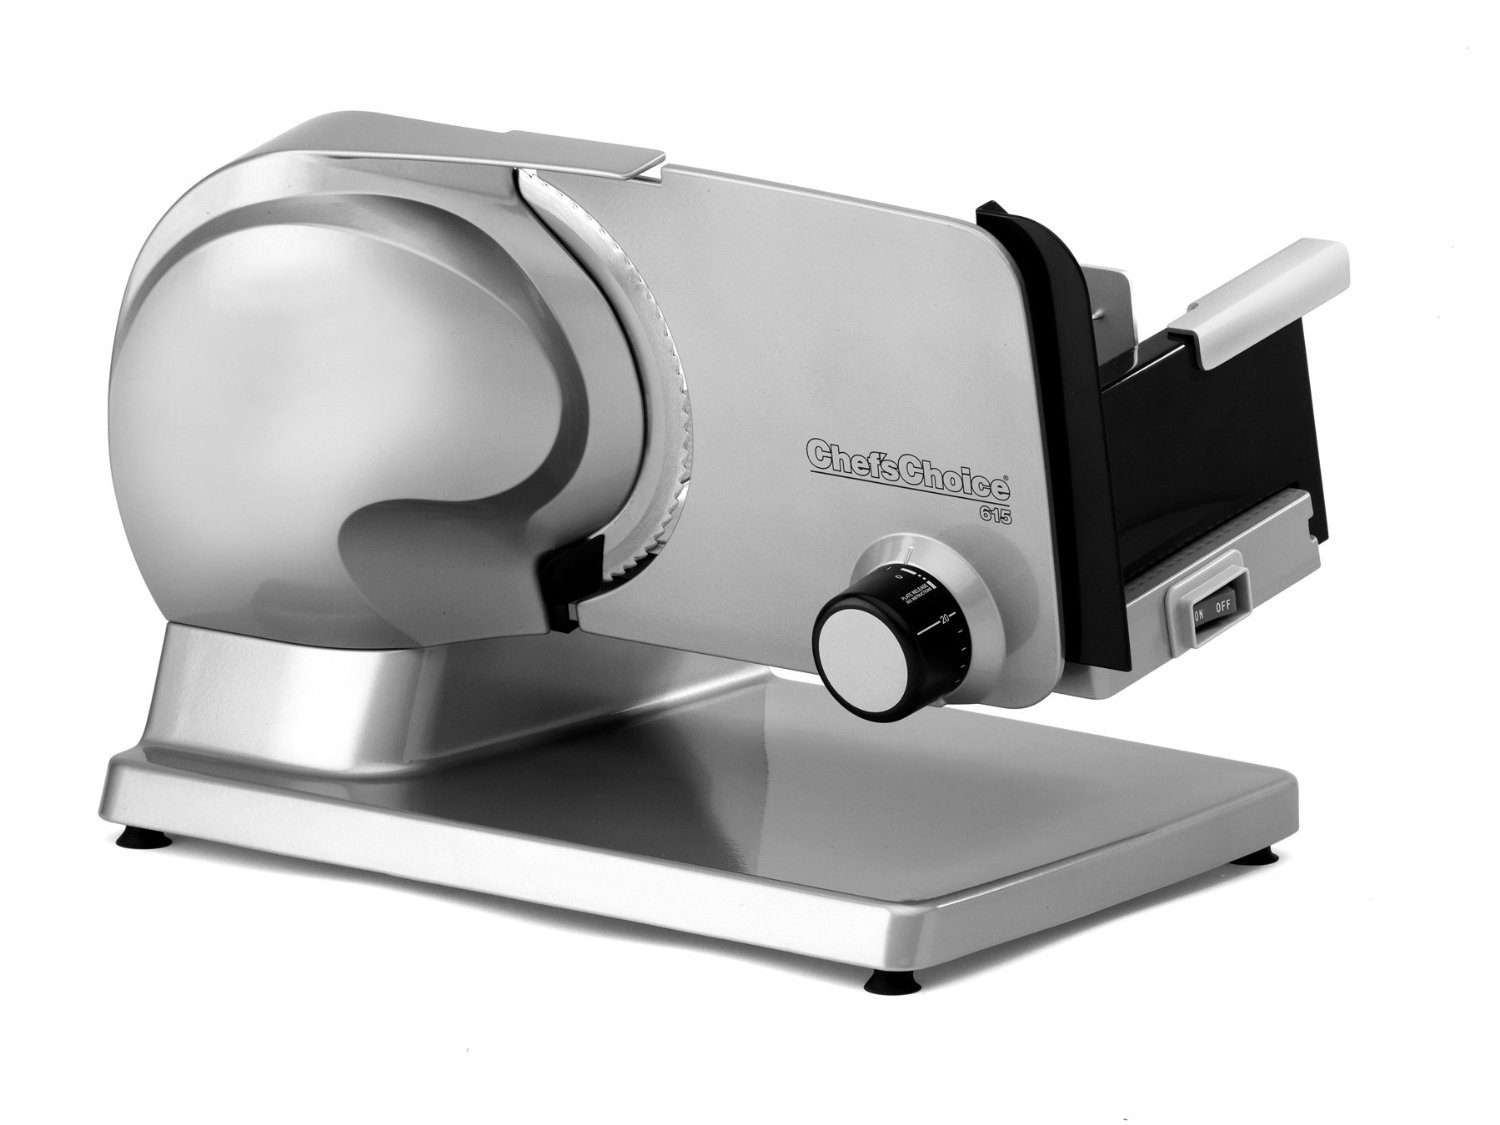 Edgecraft Chef's Choice Stainless Steel Premium Electric Food Slicer #615